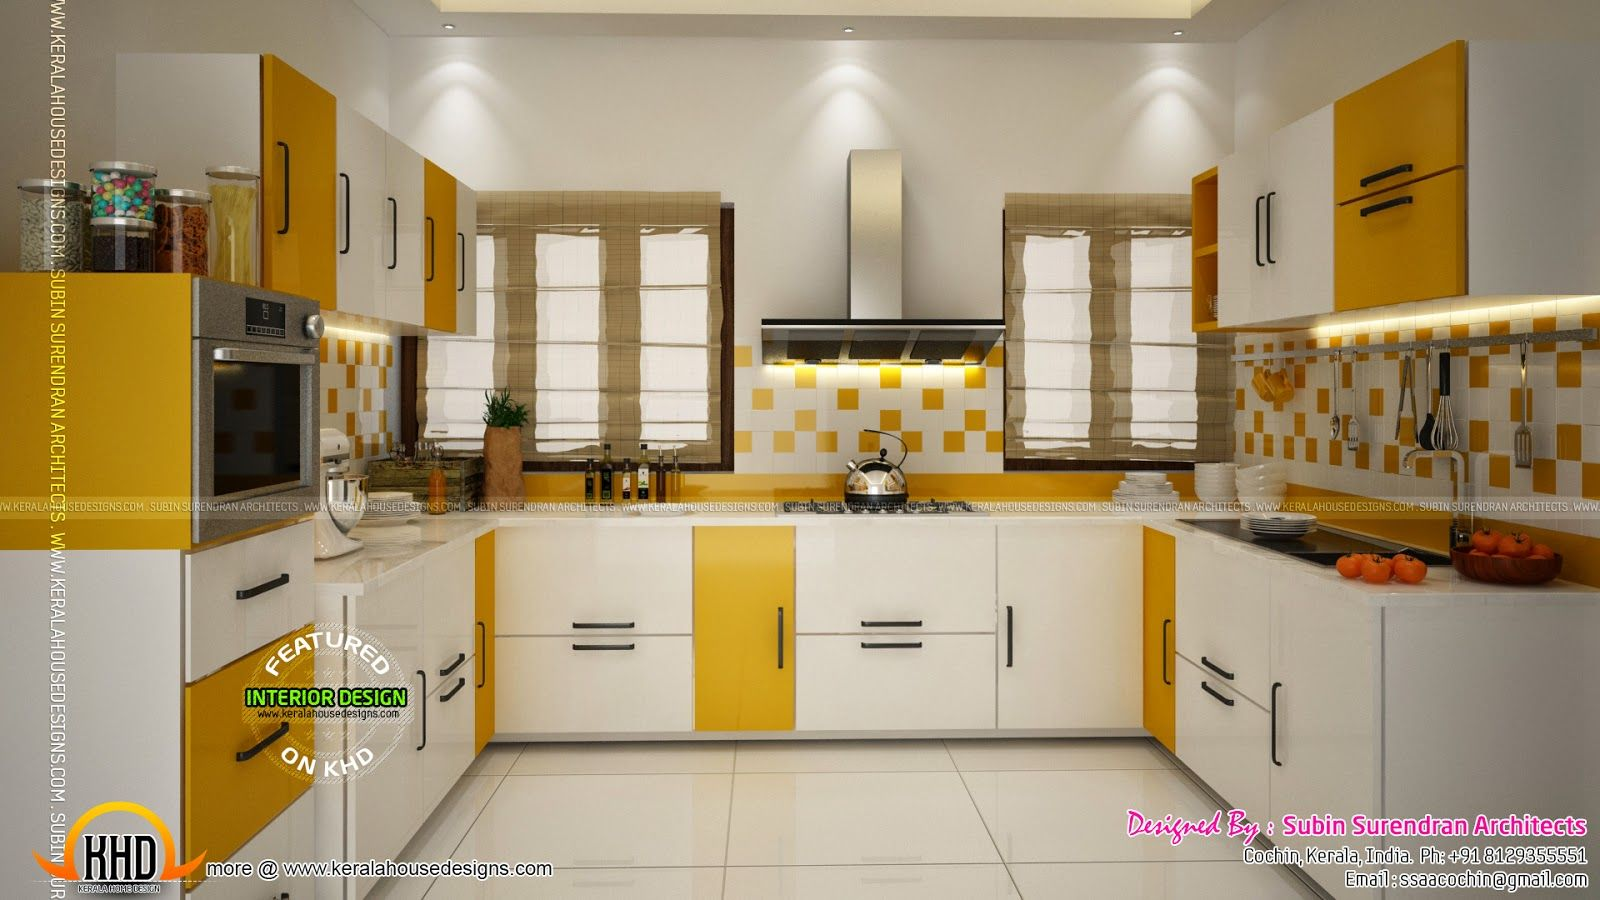 Kerala Home Design Floor Plans Interior Design Cochin Kitchen Interior Designs Contact House